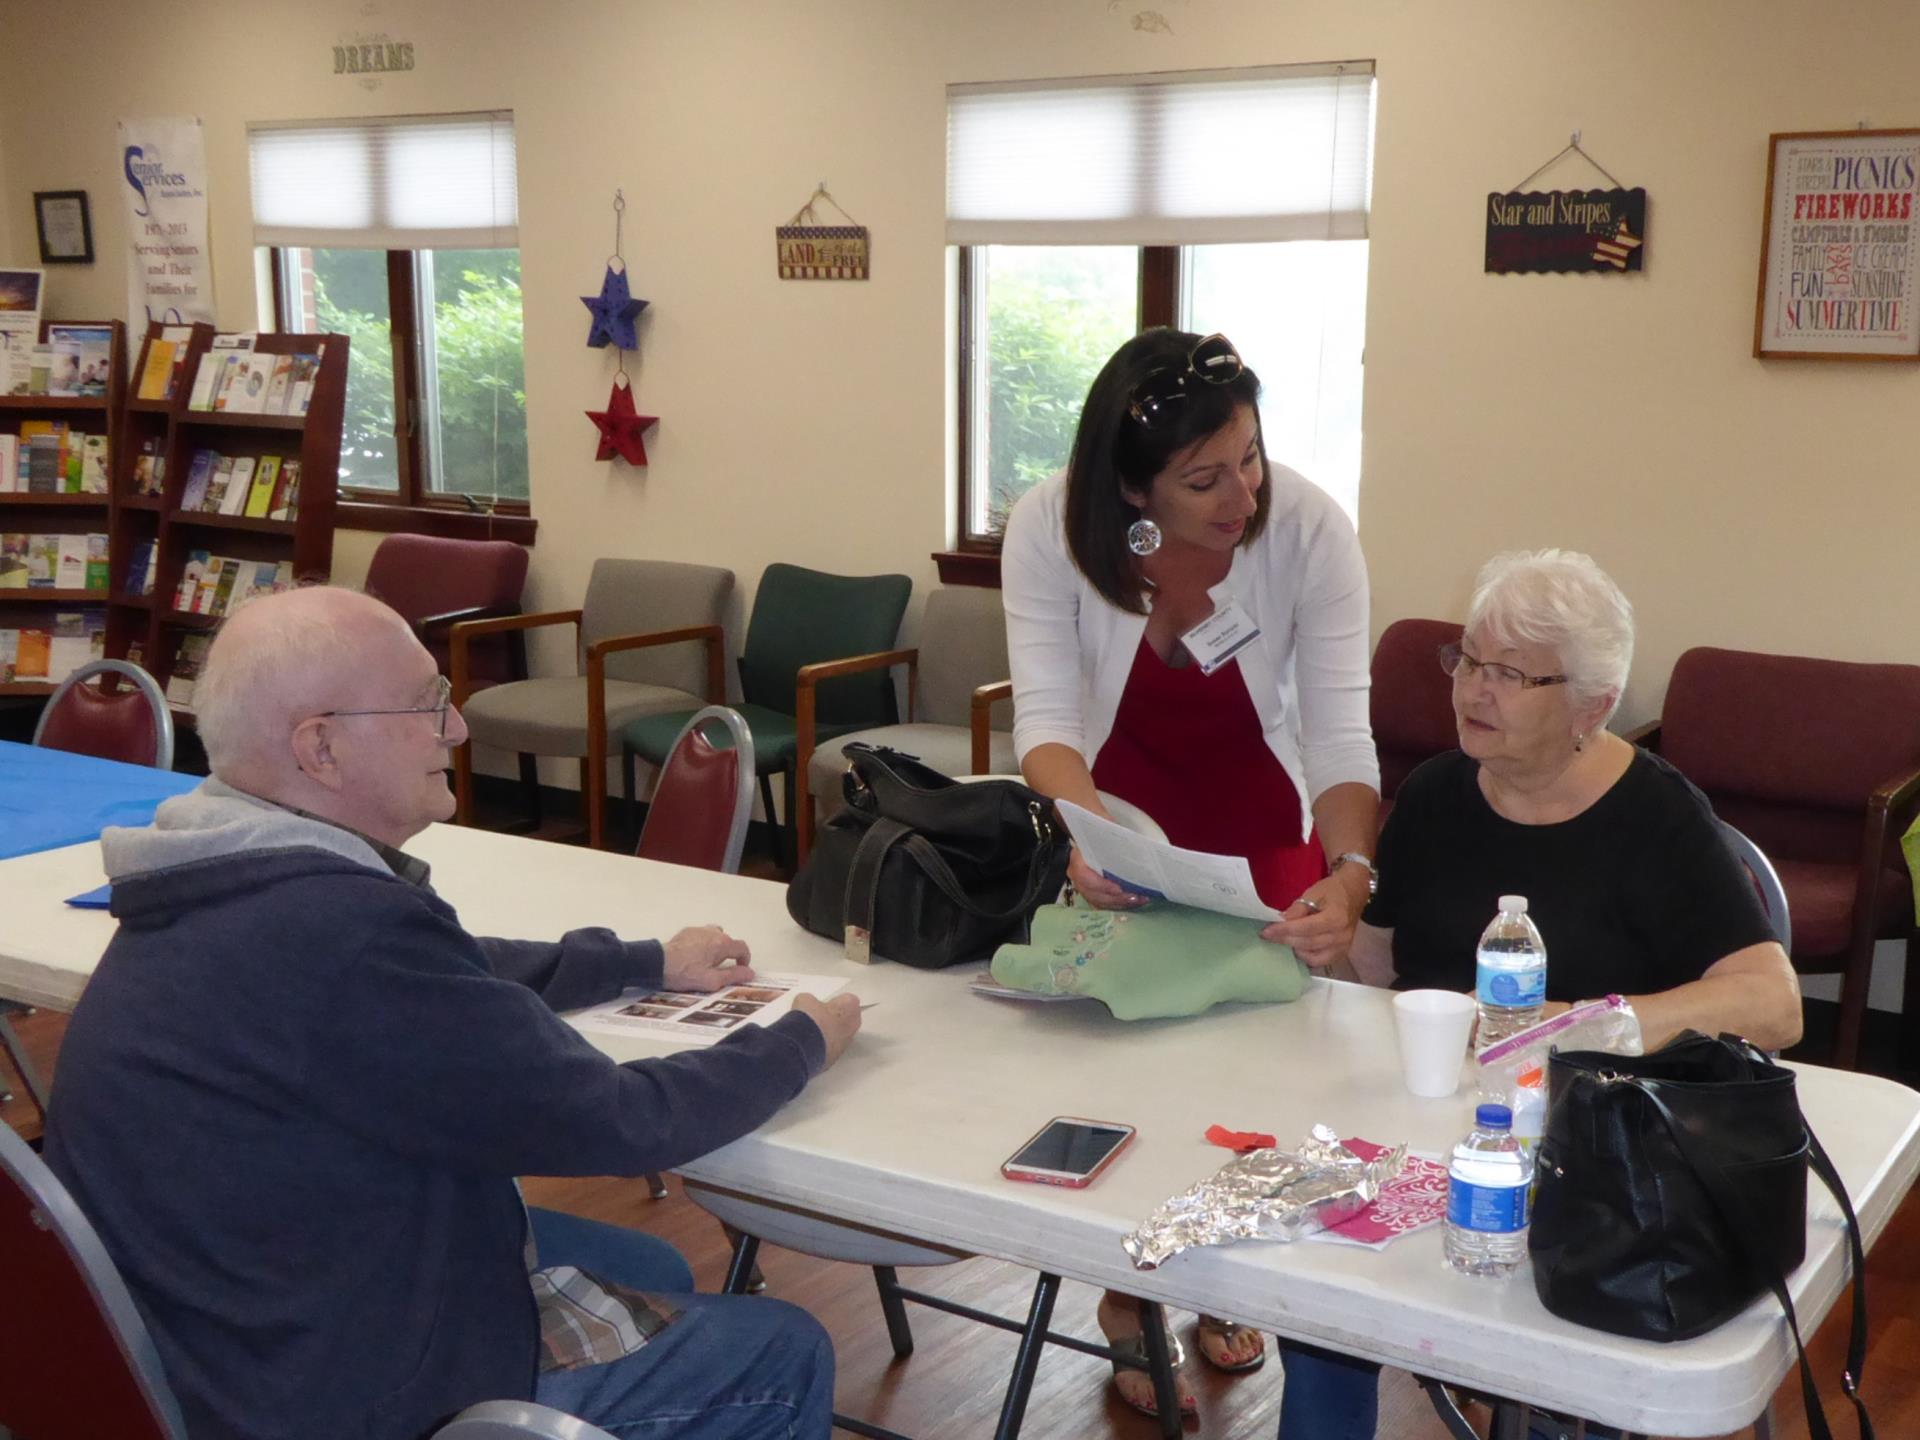 Focus group for Seniors at McHenry Township